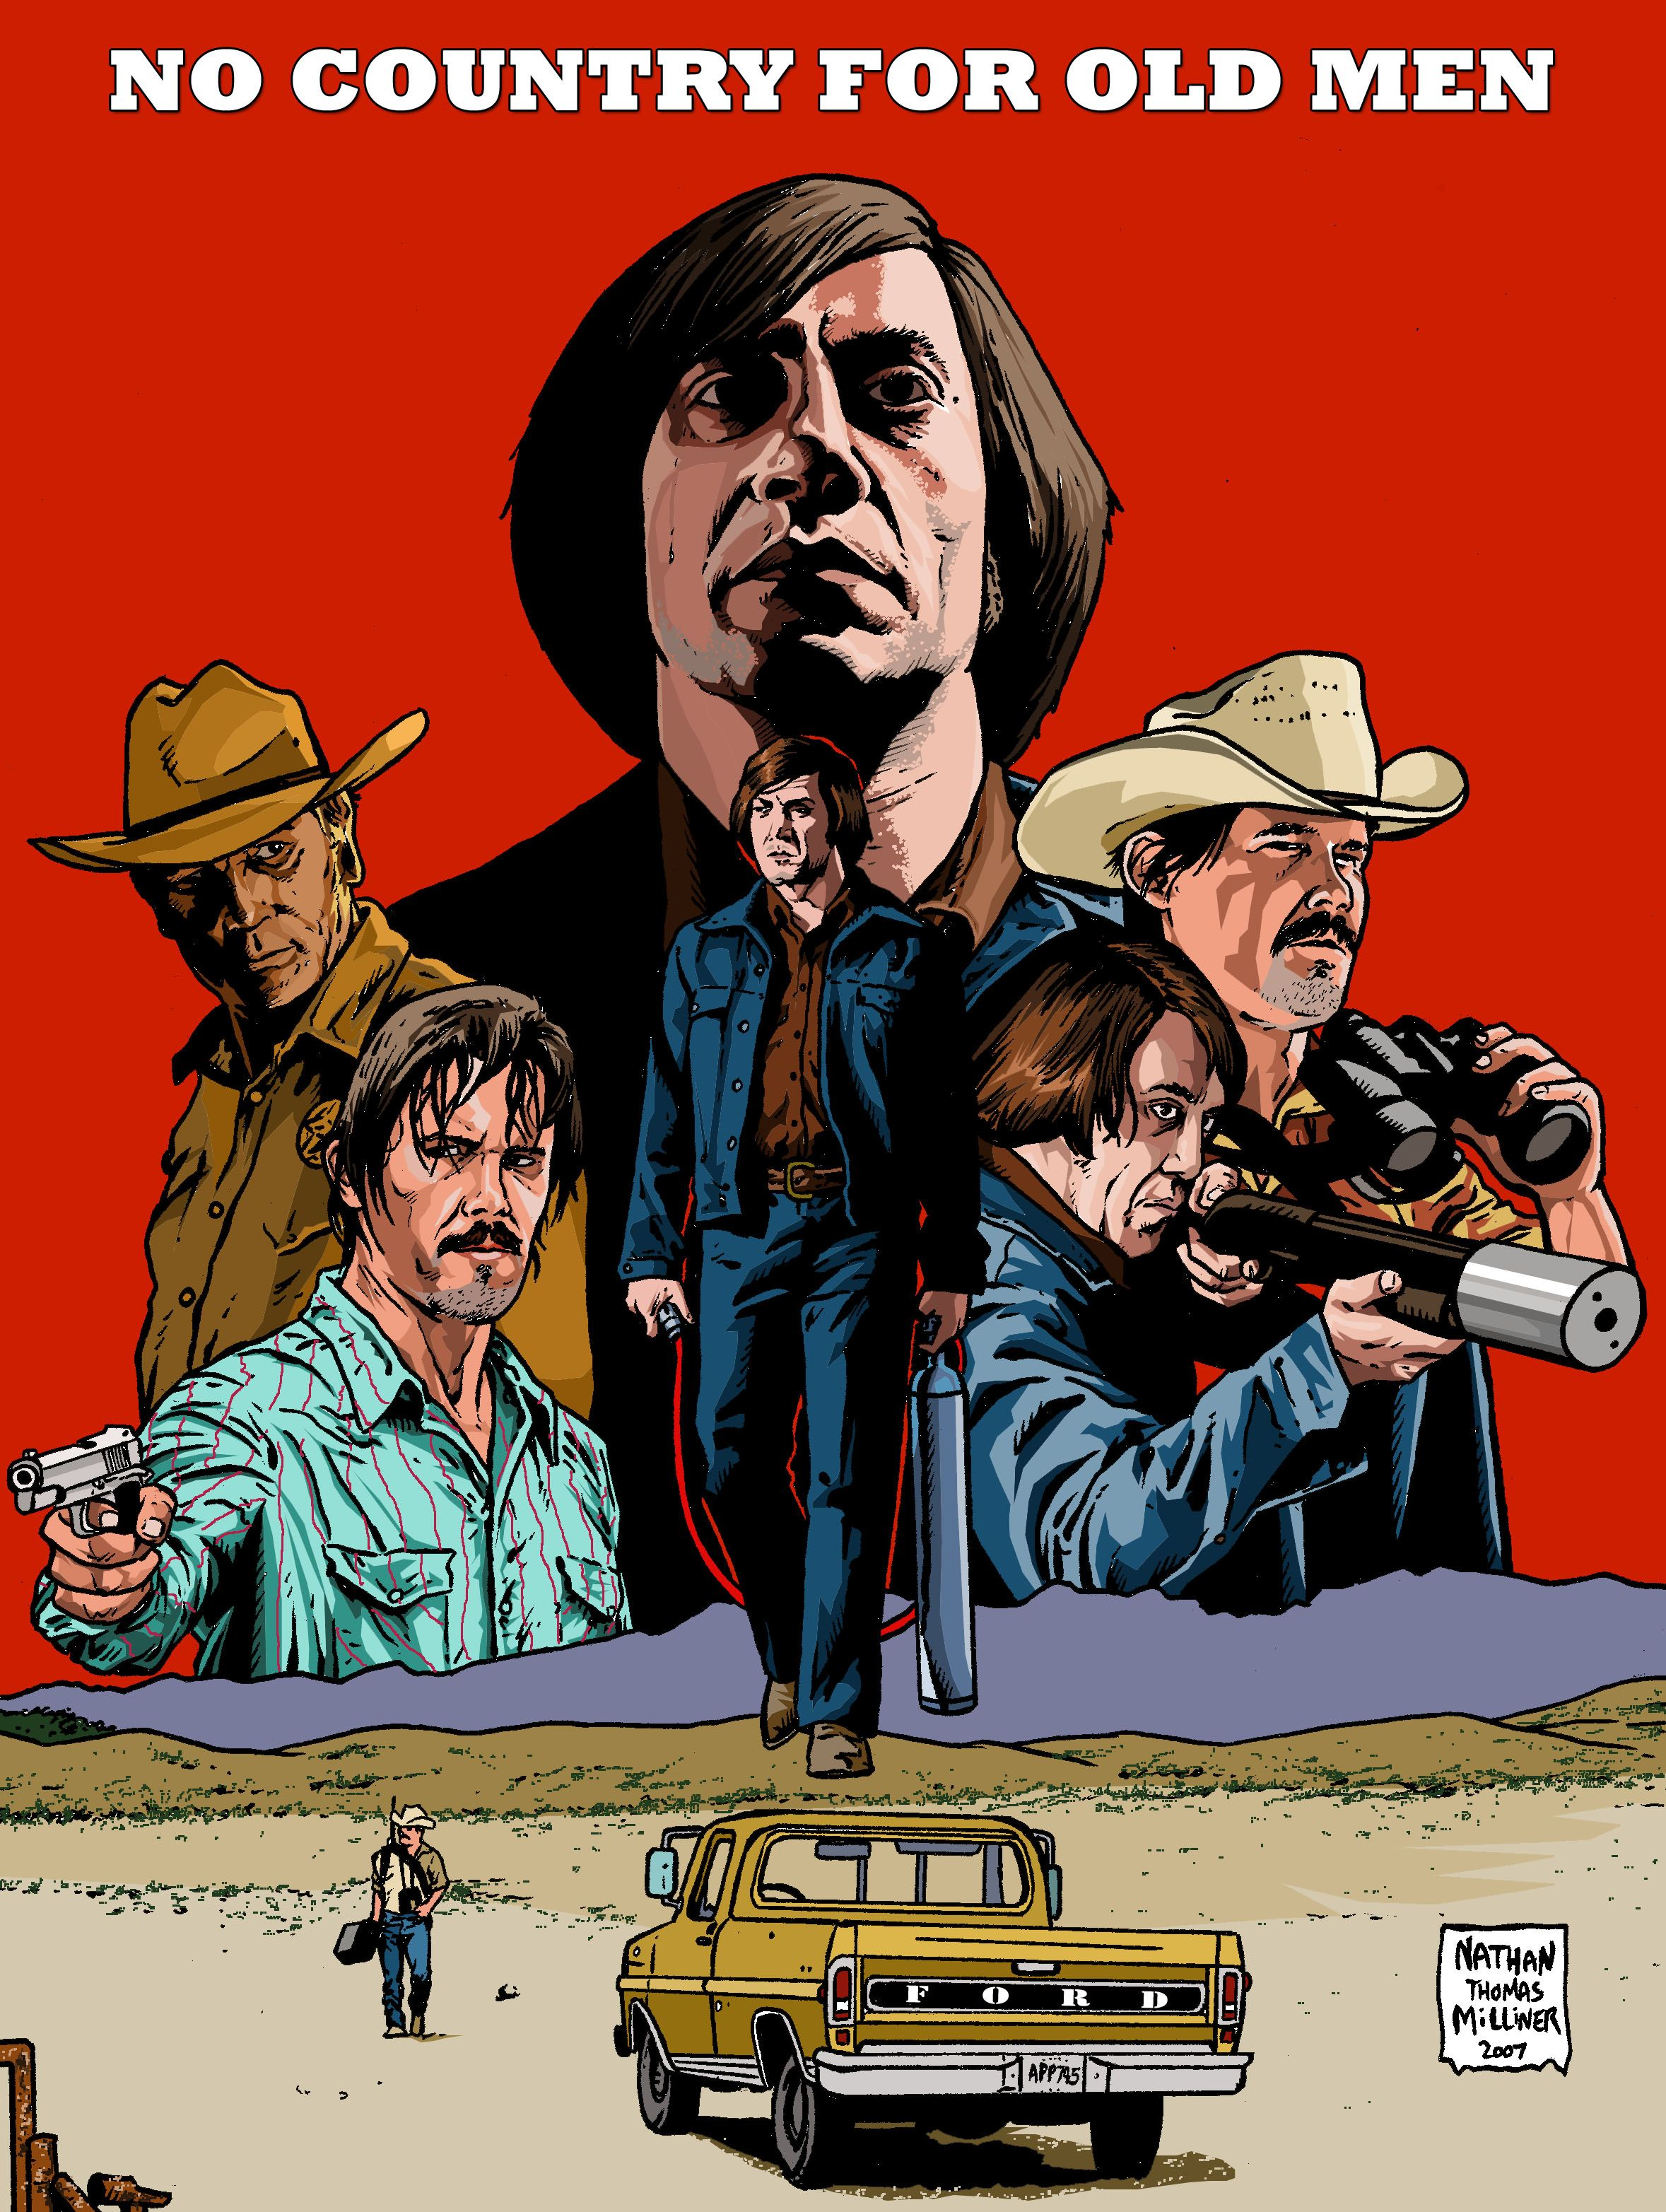 This is a film made by Joel and Ethan Coen. It was released in 2007, starring Javier Bardem and Tommy Lee Jones. I loved this movie. The Coen brothers have a particular way to tell stories. Their movies have a lot of images and few dialogue. Even though, the movie is a bit slow, it is created in an atmosphere of suspense that  pushes the spectator to be totally submerged in the story. Worth watching! :)